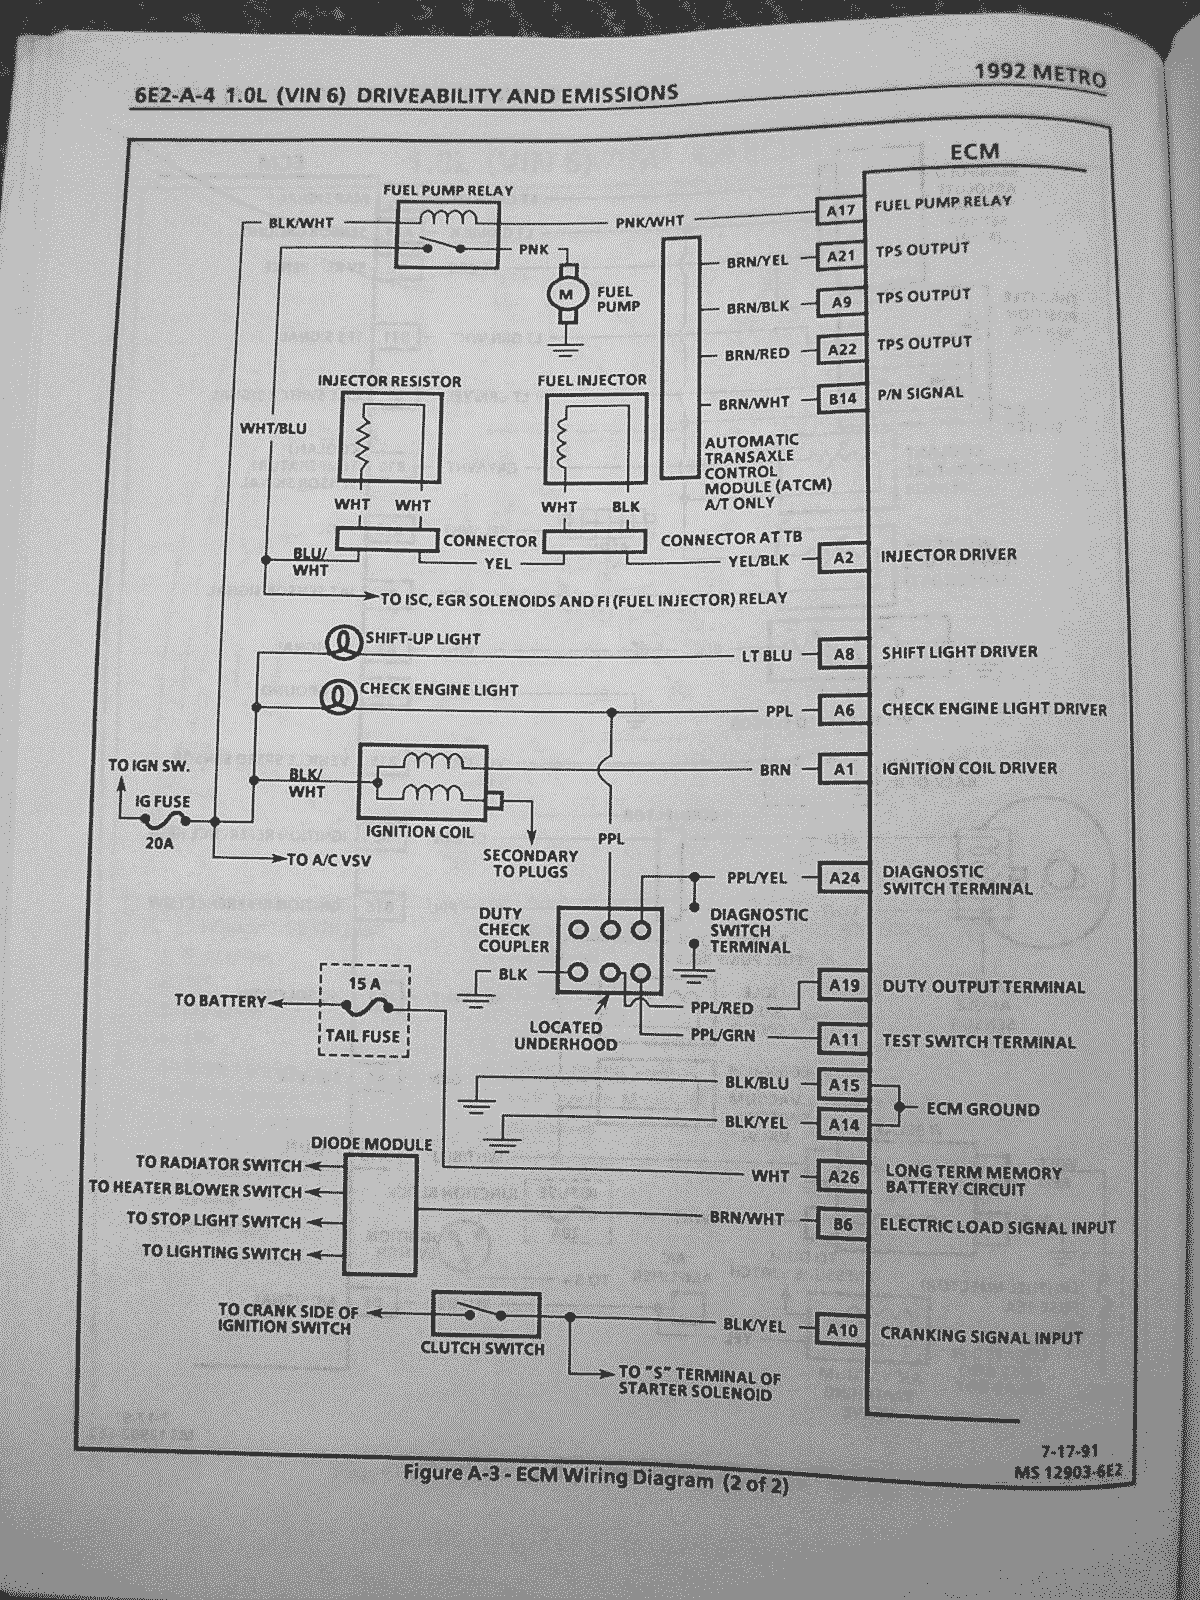 6e2 a 4 geo metro and suzuki swift wiring diagrams metroxfi com